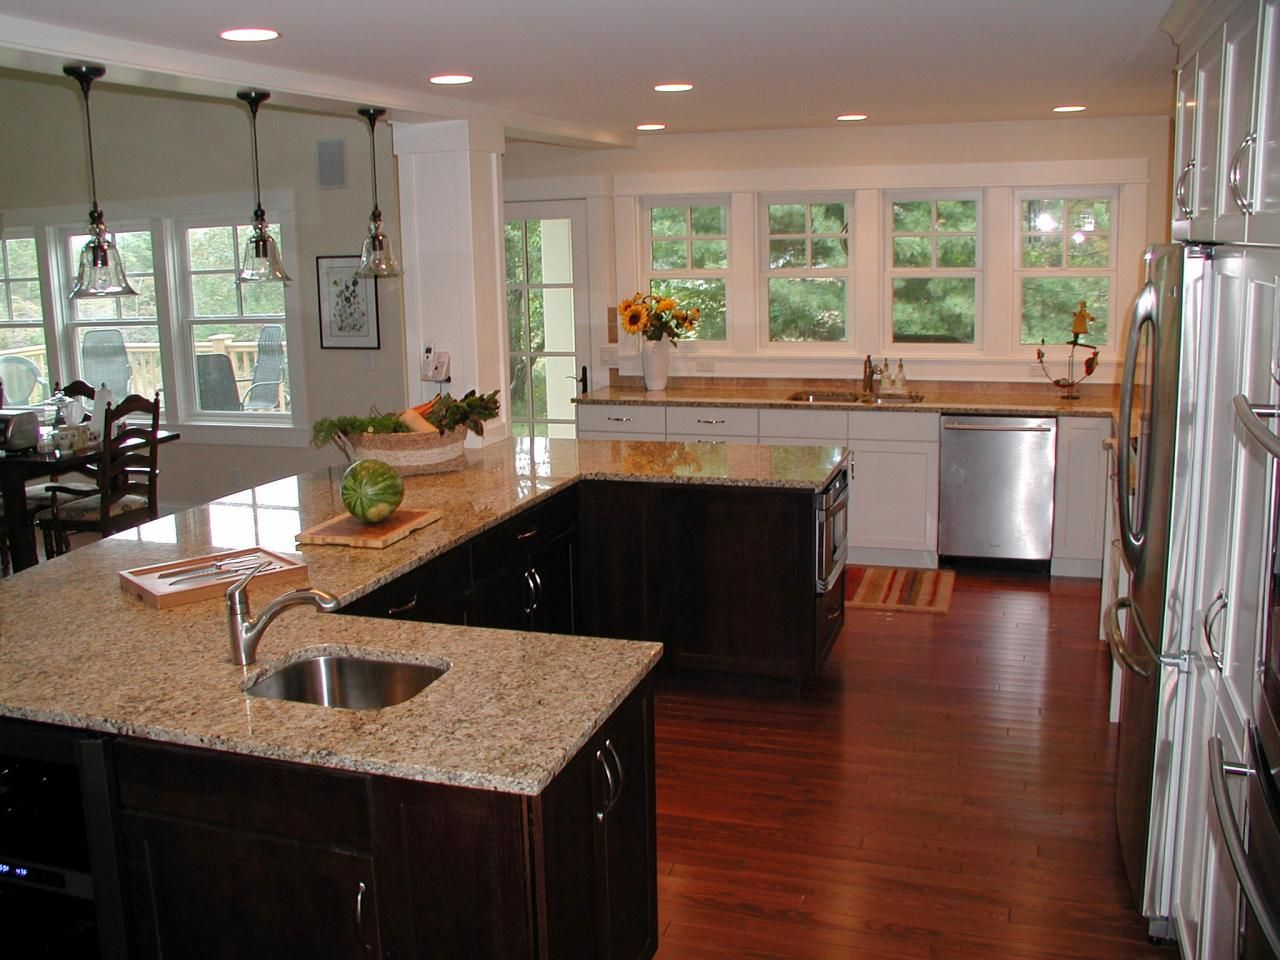 20 party ready kitchens u shaped kitchen island kitchen layouts with island kitchen layout on u kitchen with island id=66718